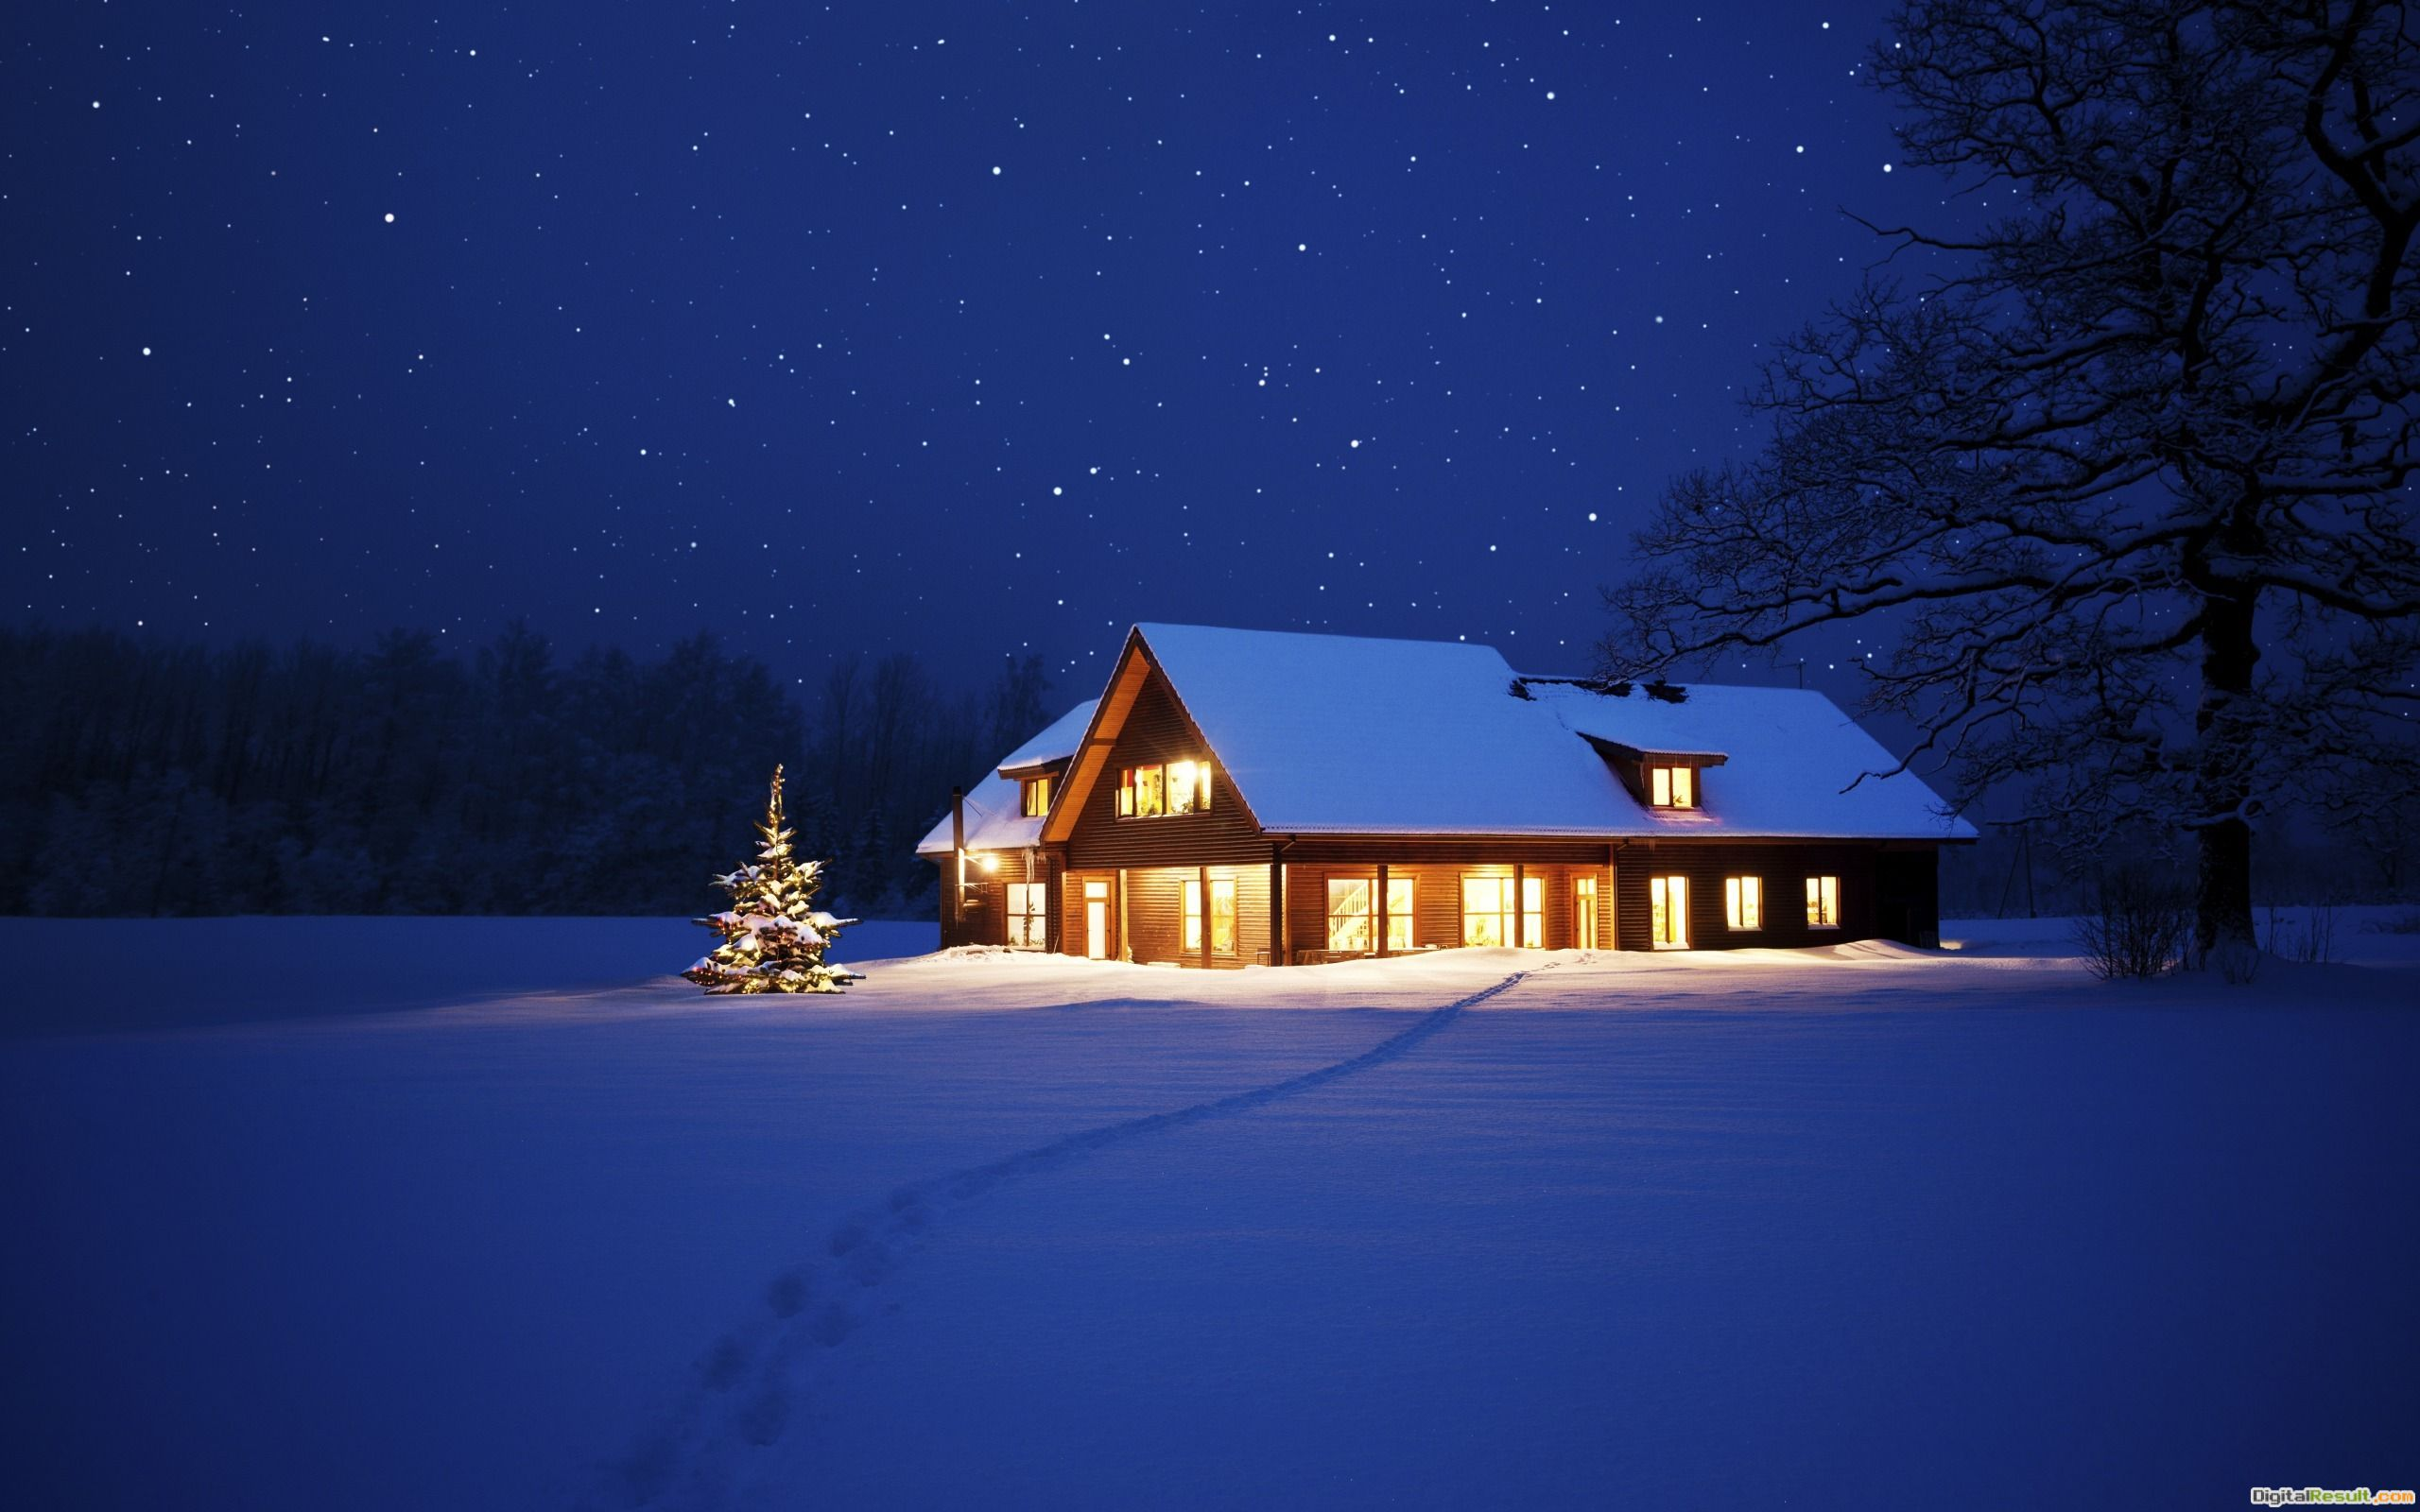 lonely house in the snow wallpapers and imageswallpapers 1968